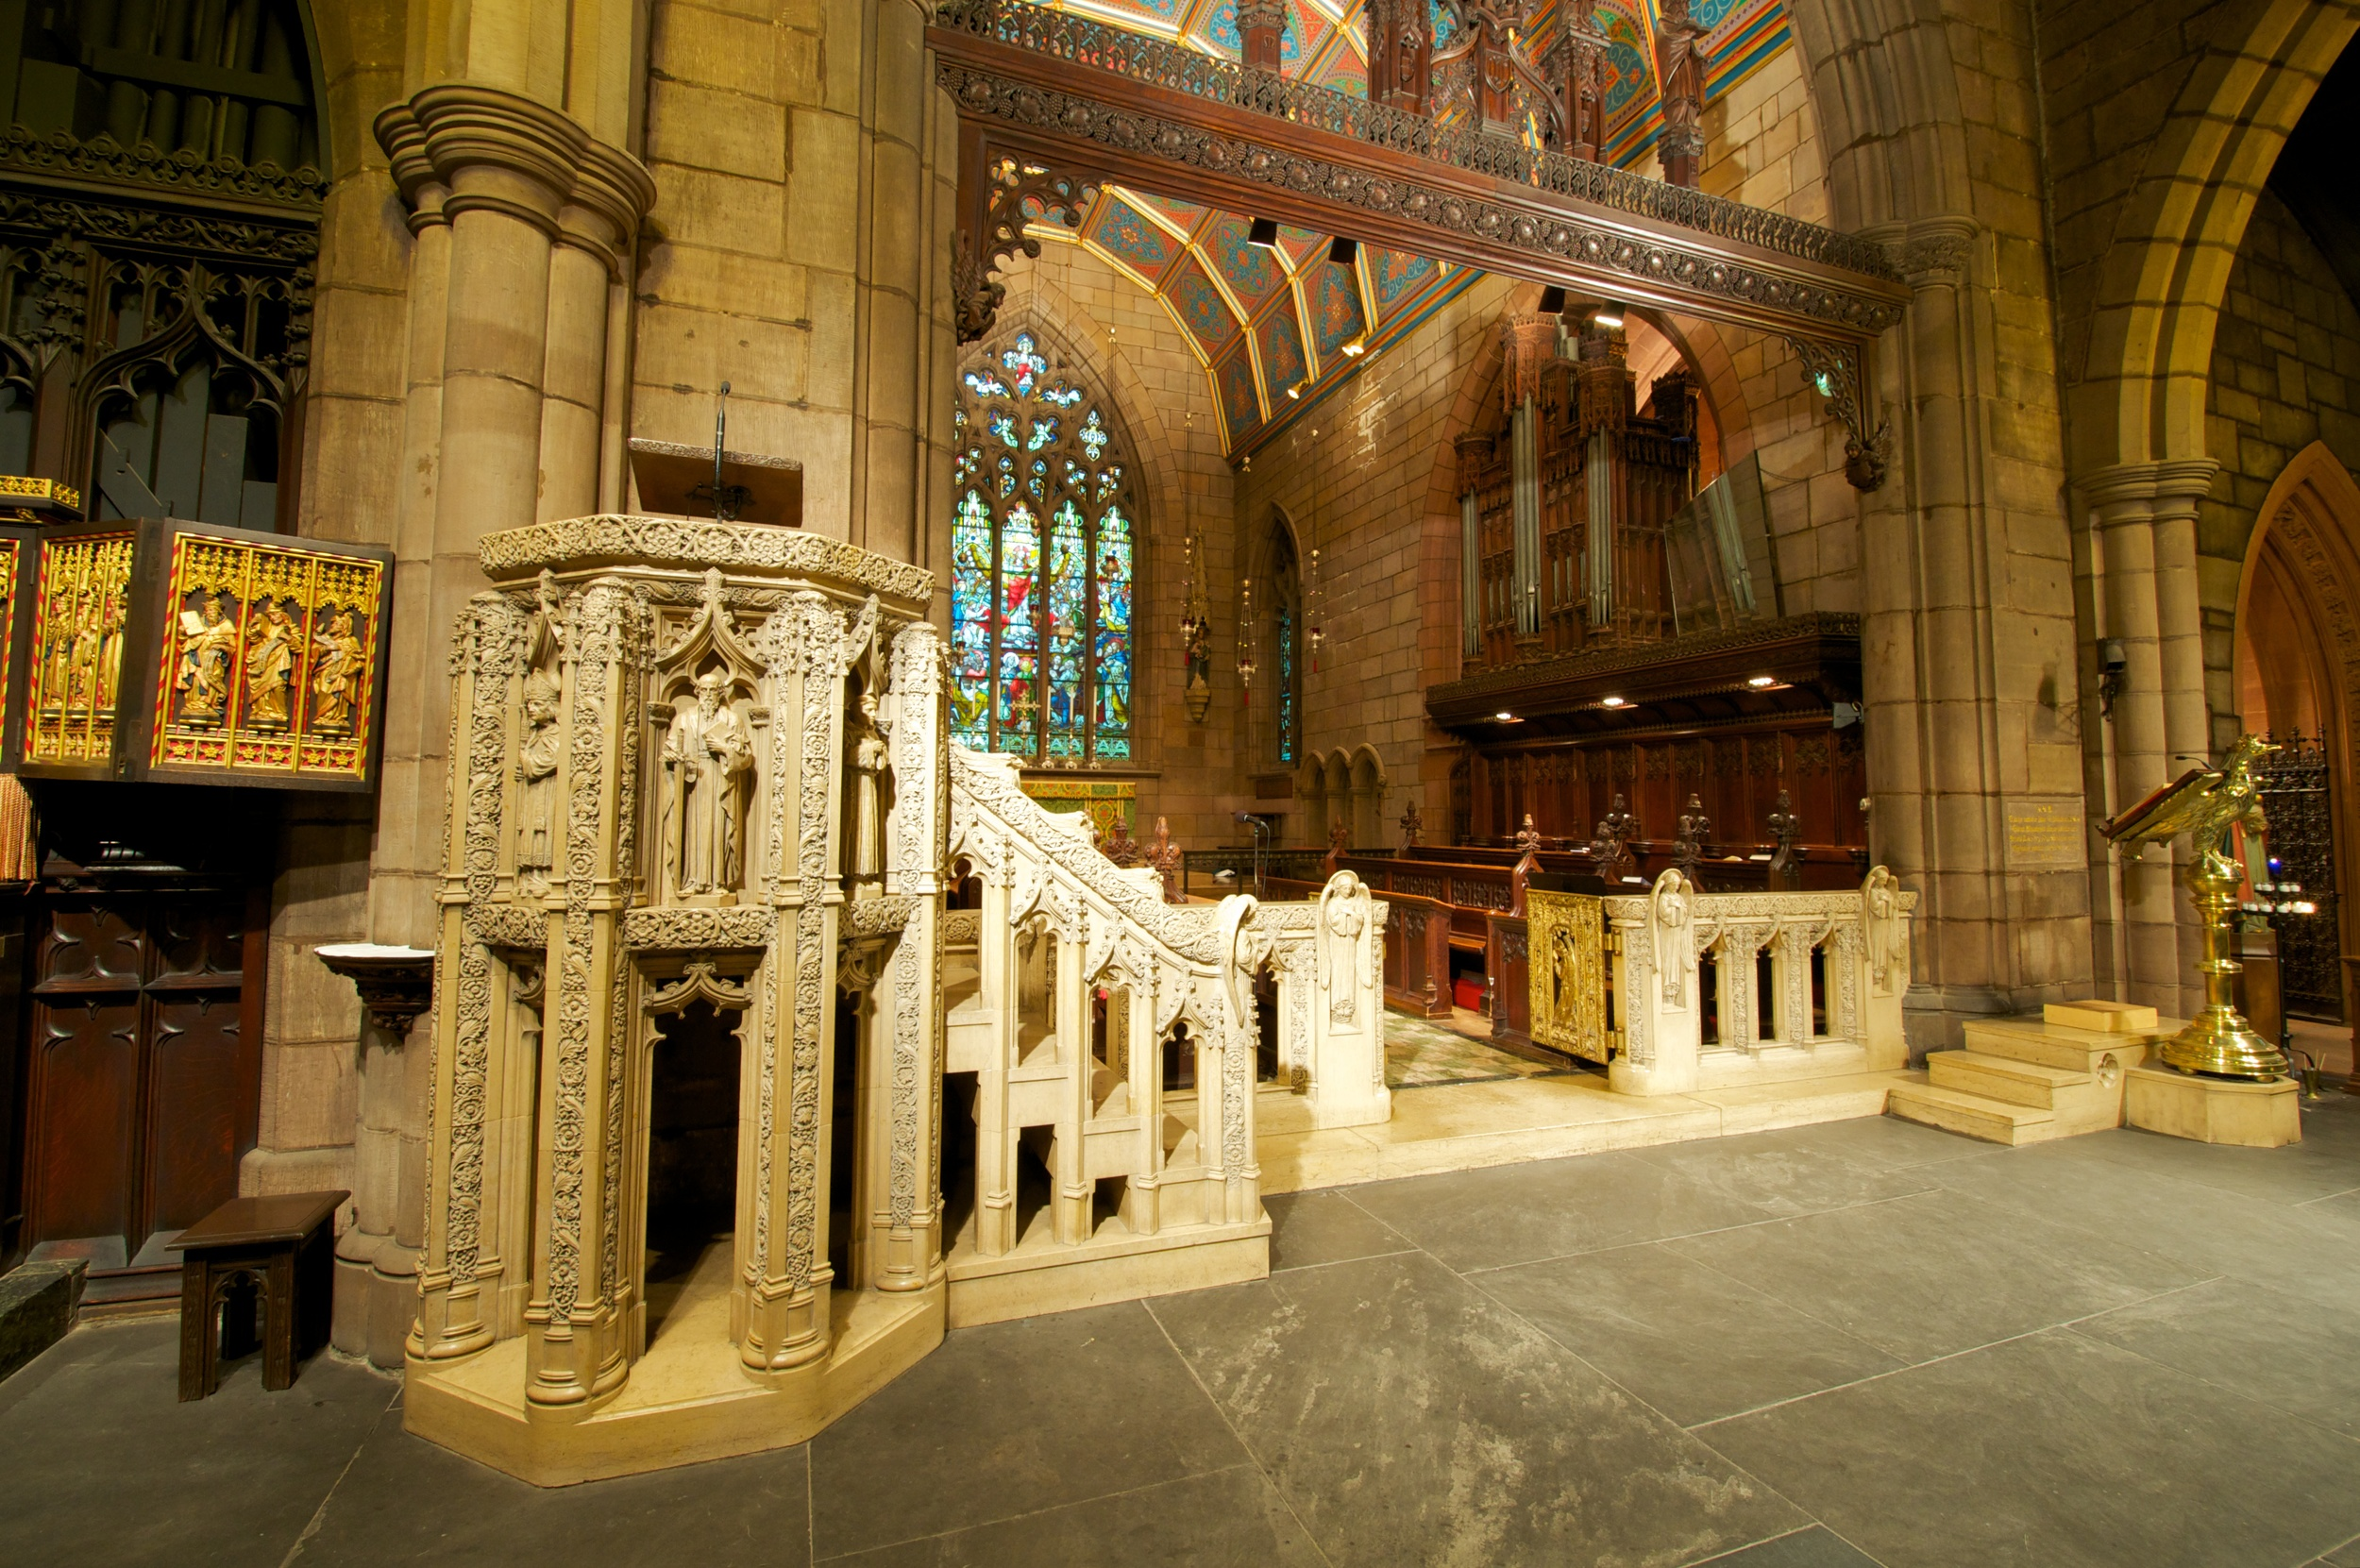 The Pulpit and Chancel Gate